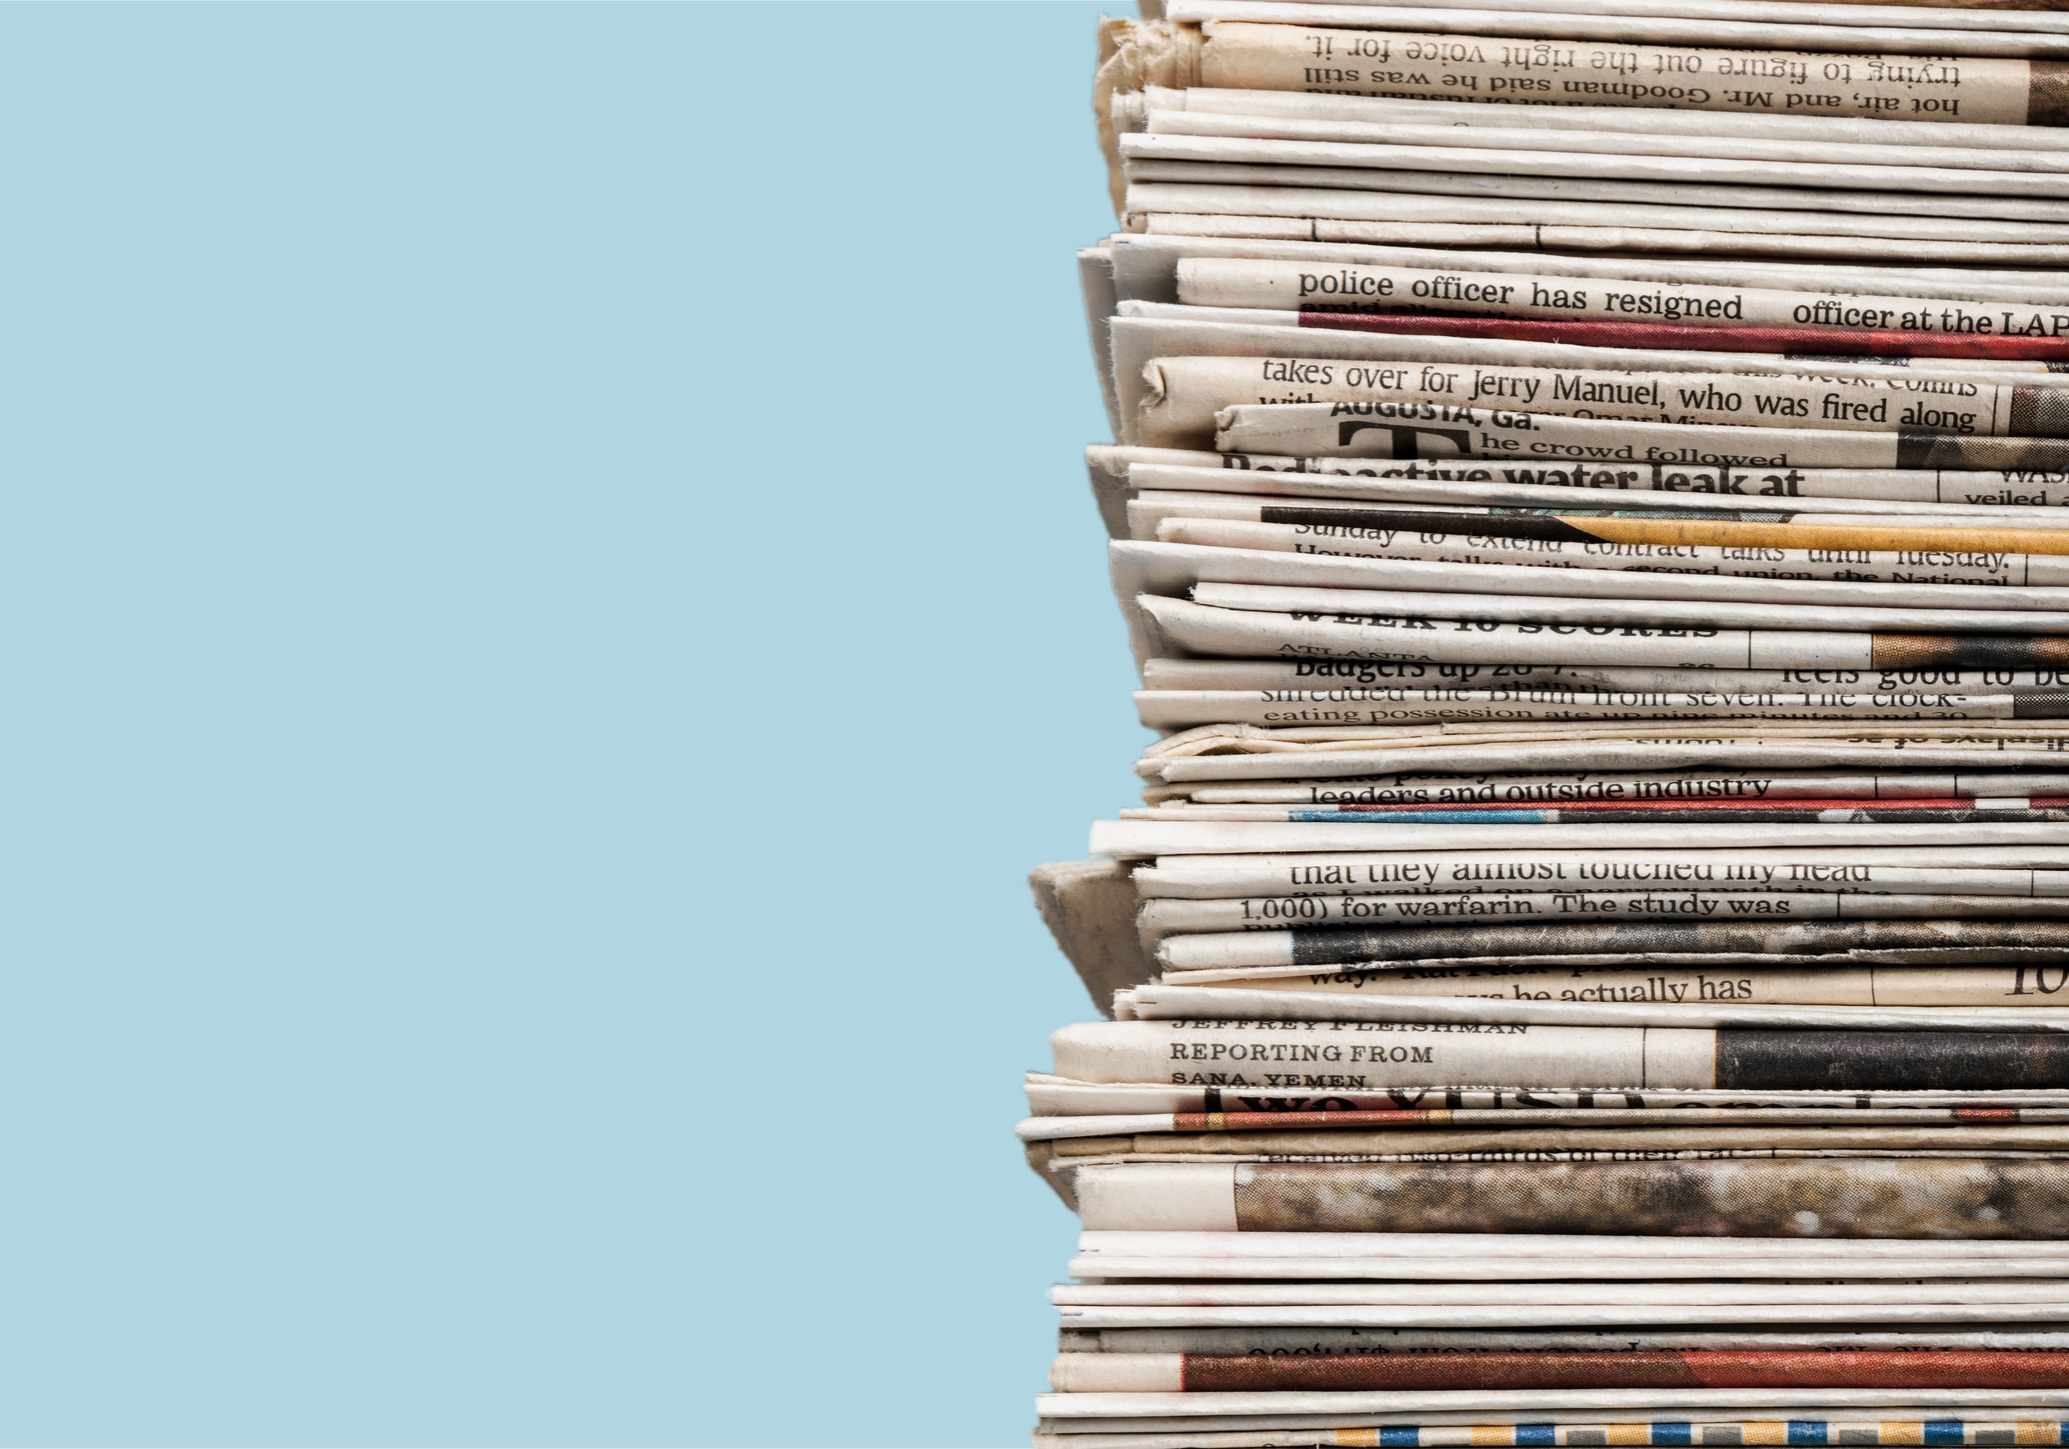 How long can a newspaper be stored before it disintegrates? © Getty Images